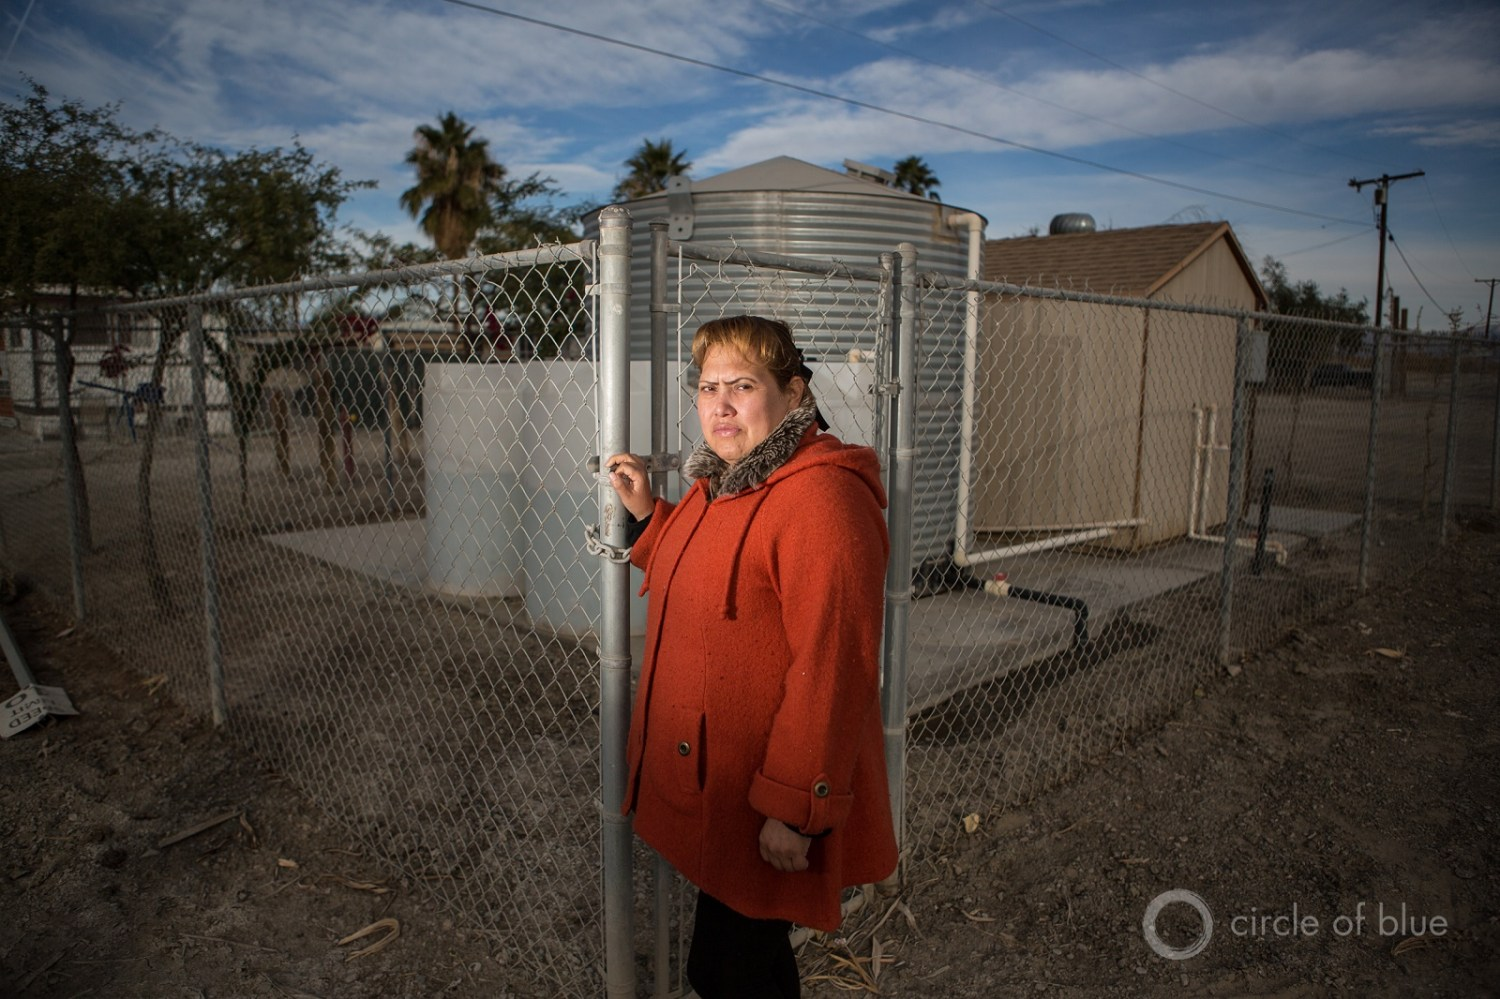 Migrant communities in southern California have to rely on unsafe groundwater supplies or drive to access clean supplies. A water filtration station in the Coachella Valley removes arsenic from groundwater. Photo © J. Carl Ganter / Circle of Blue